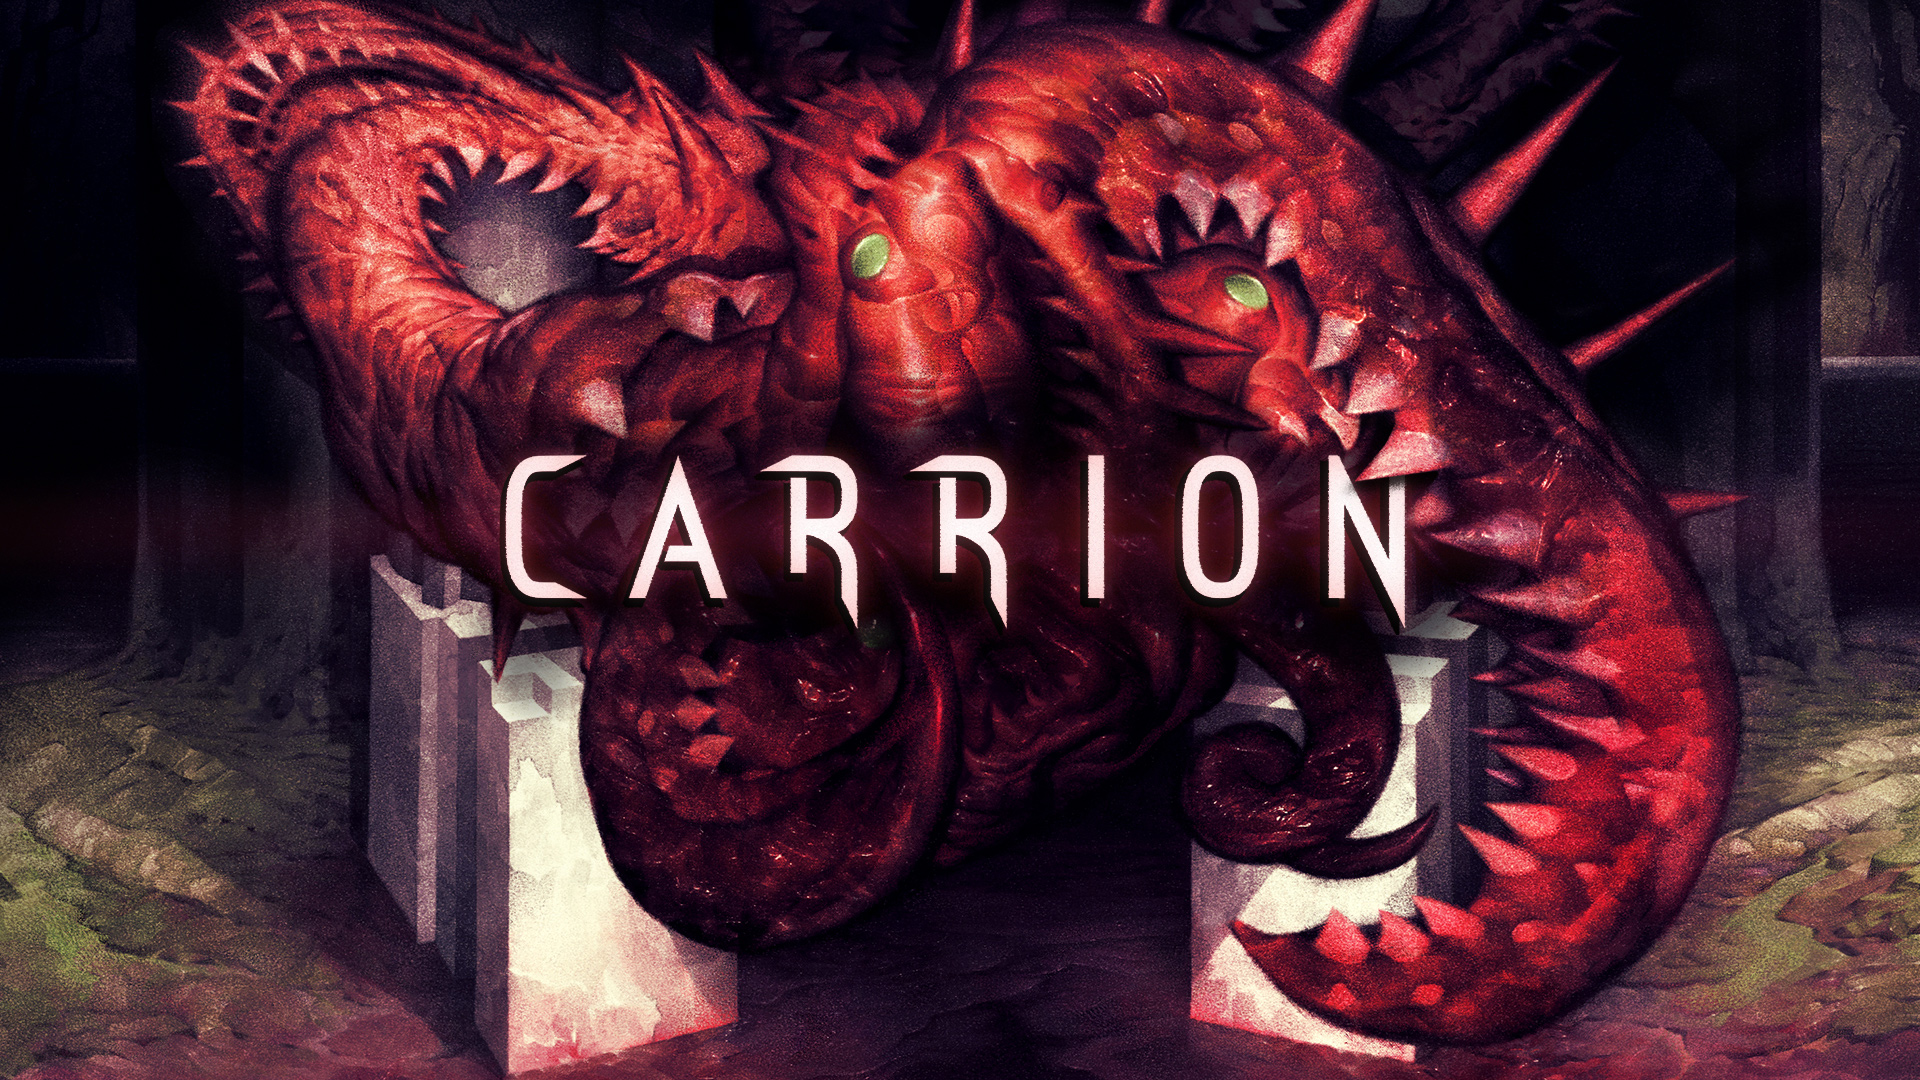 The squishy monster game Carrion is coming to Nintendo Switch screenshot